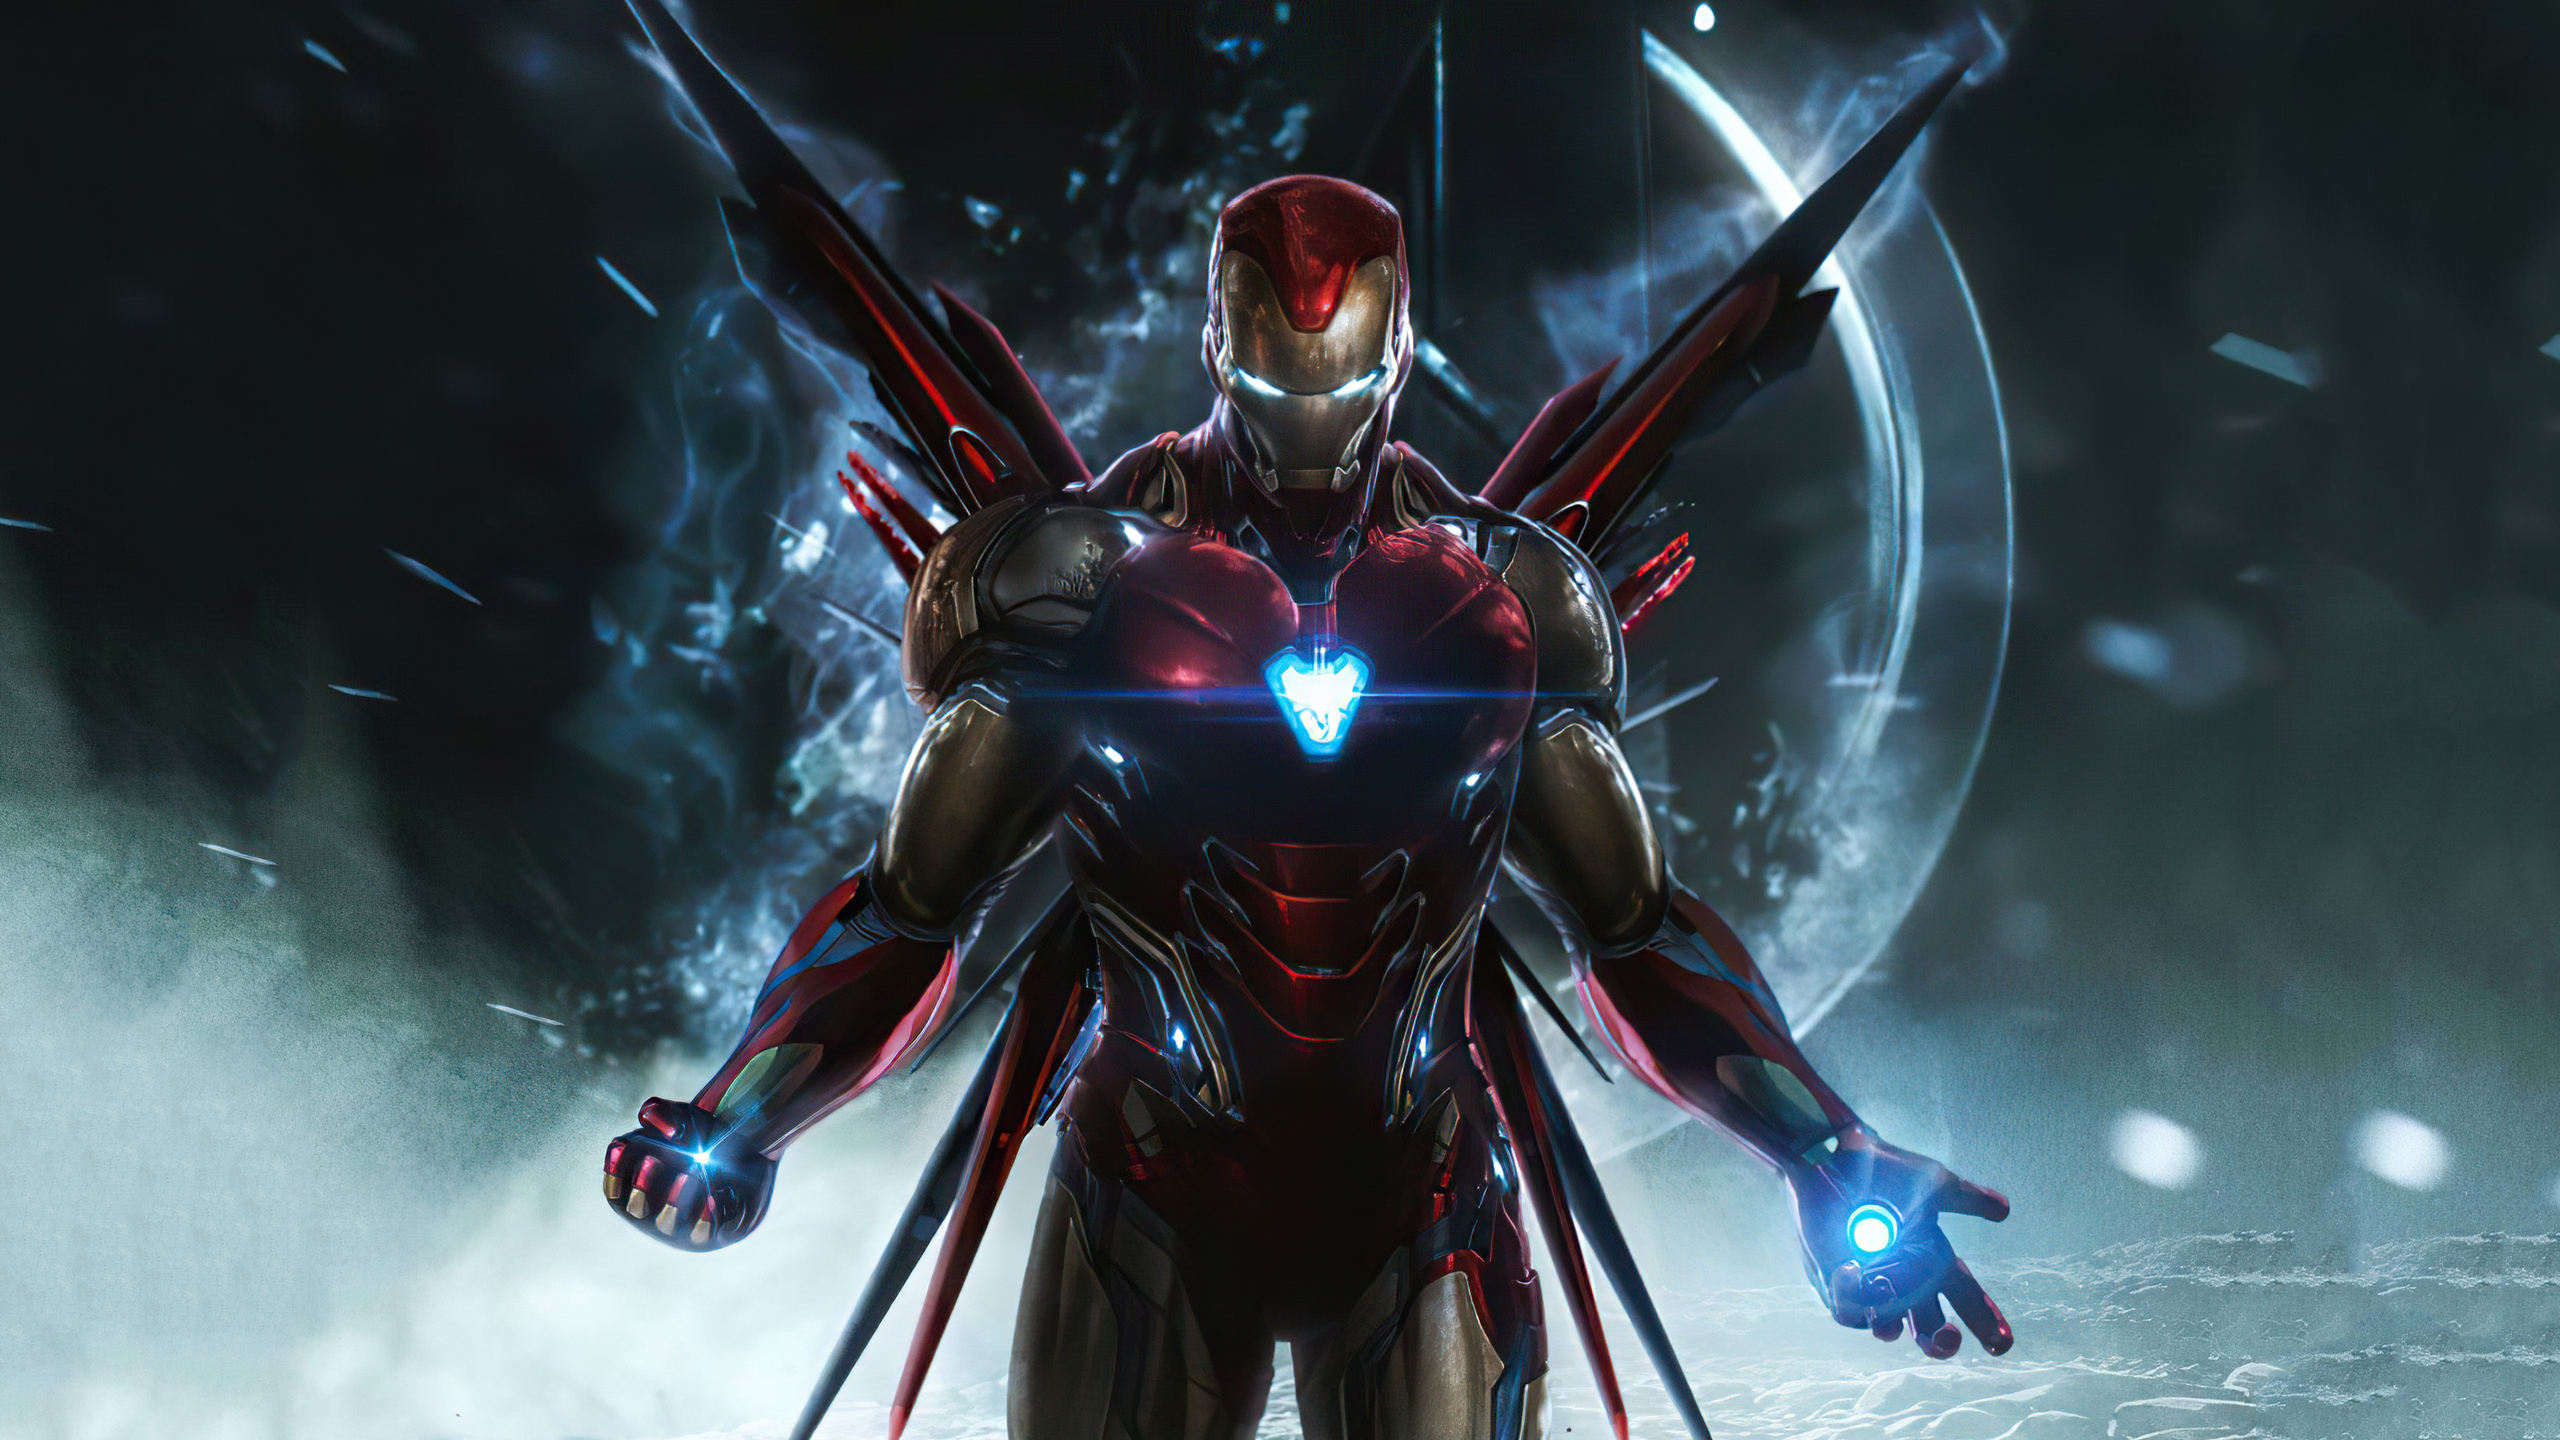 General 2560x1440 fan art digital art Iron Man Marvel Comics superhero